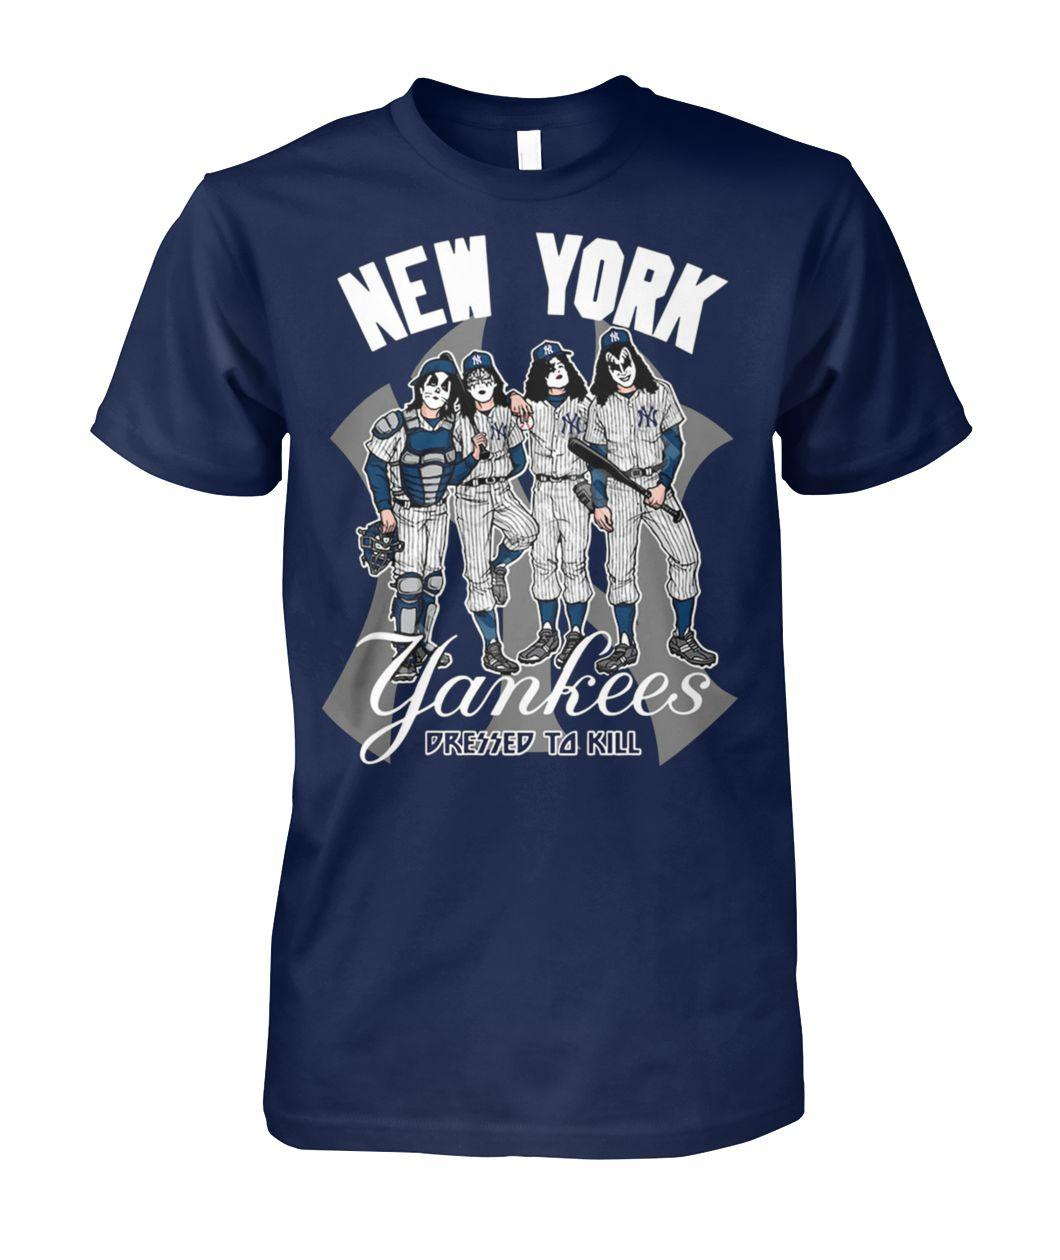 New york yankees dressed to kill kiss rock band unisex cotton tee